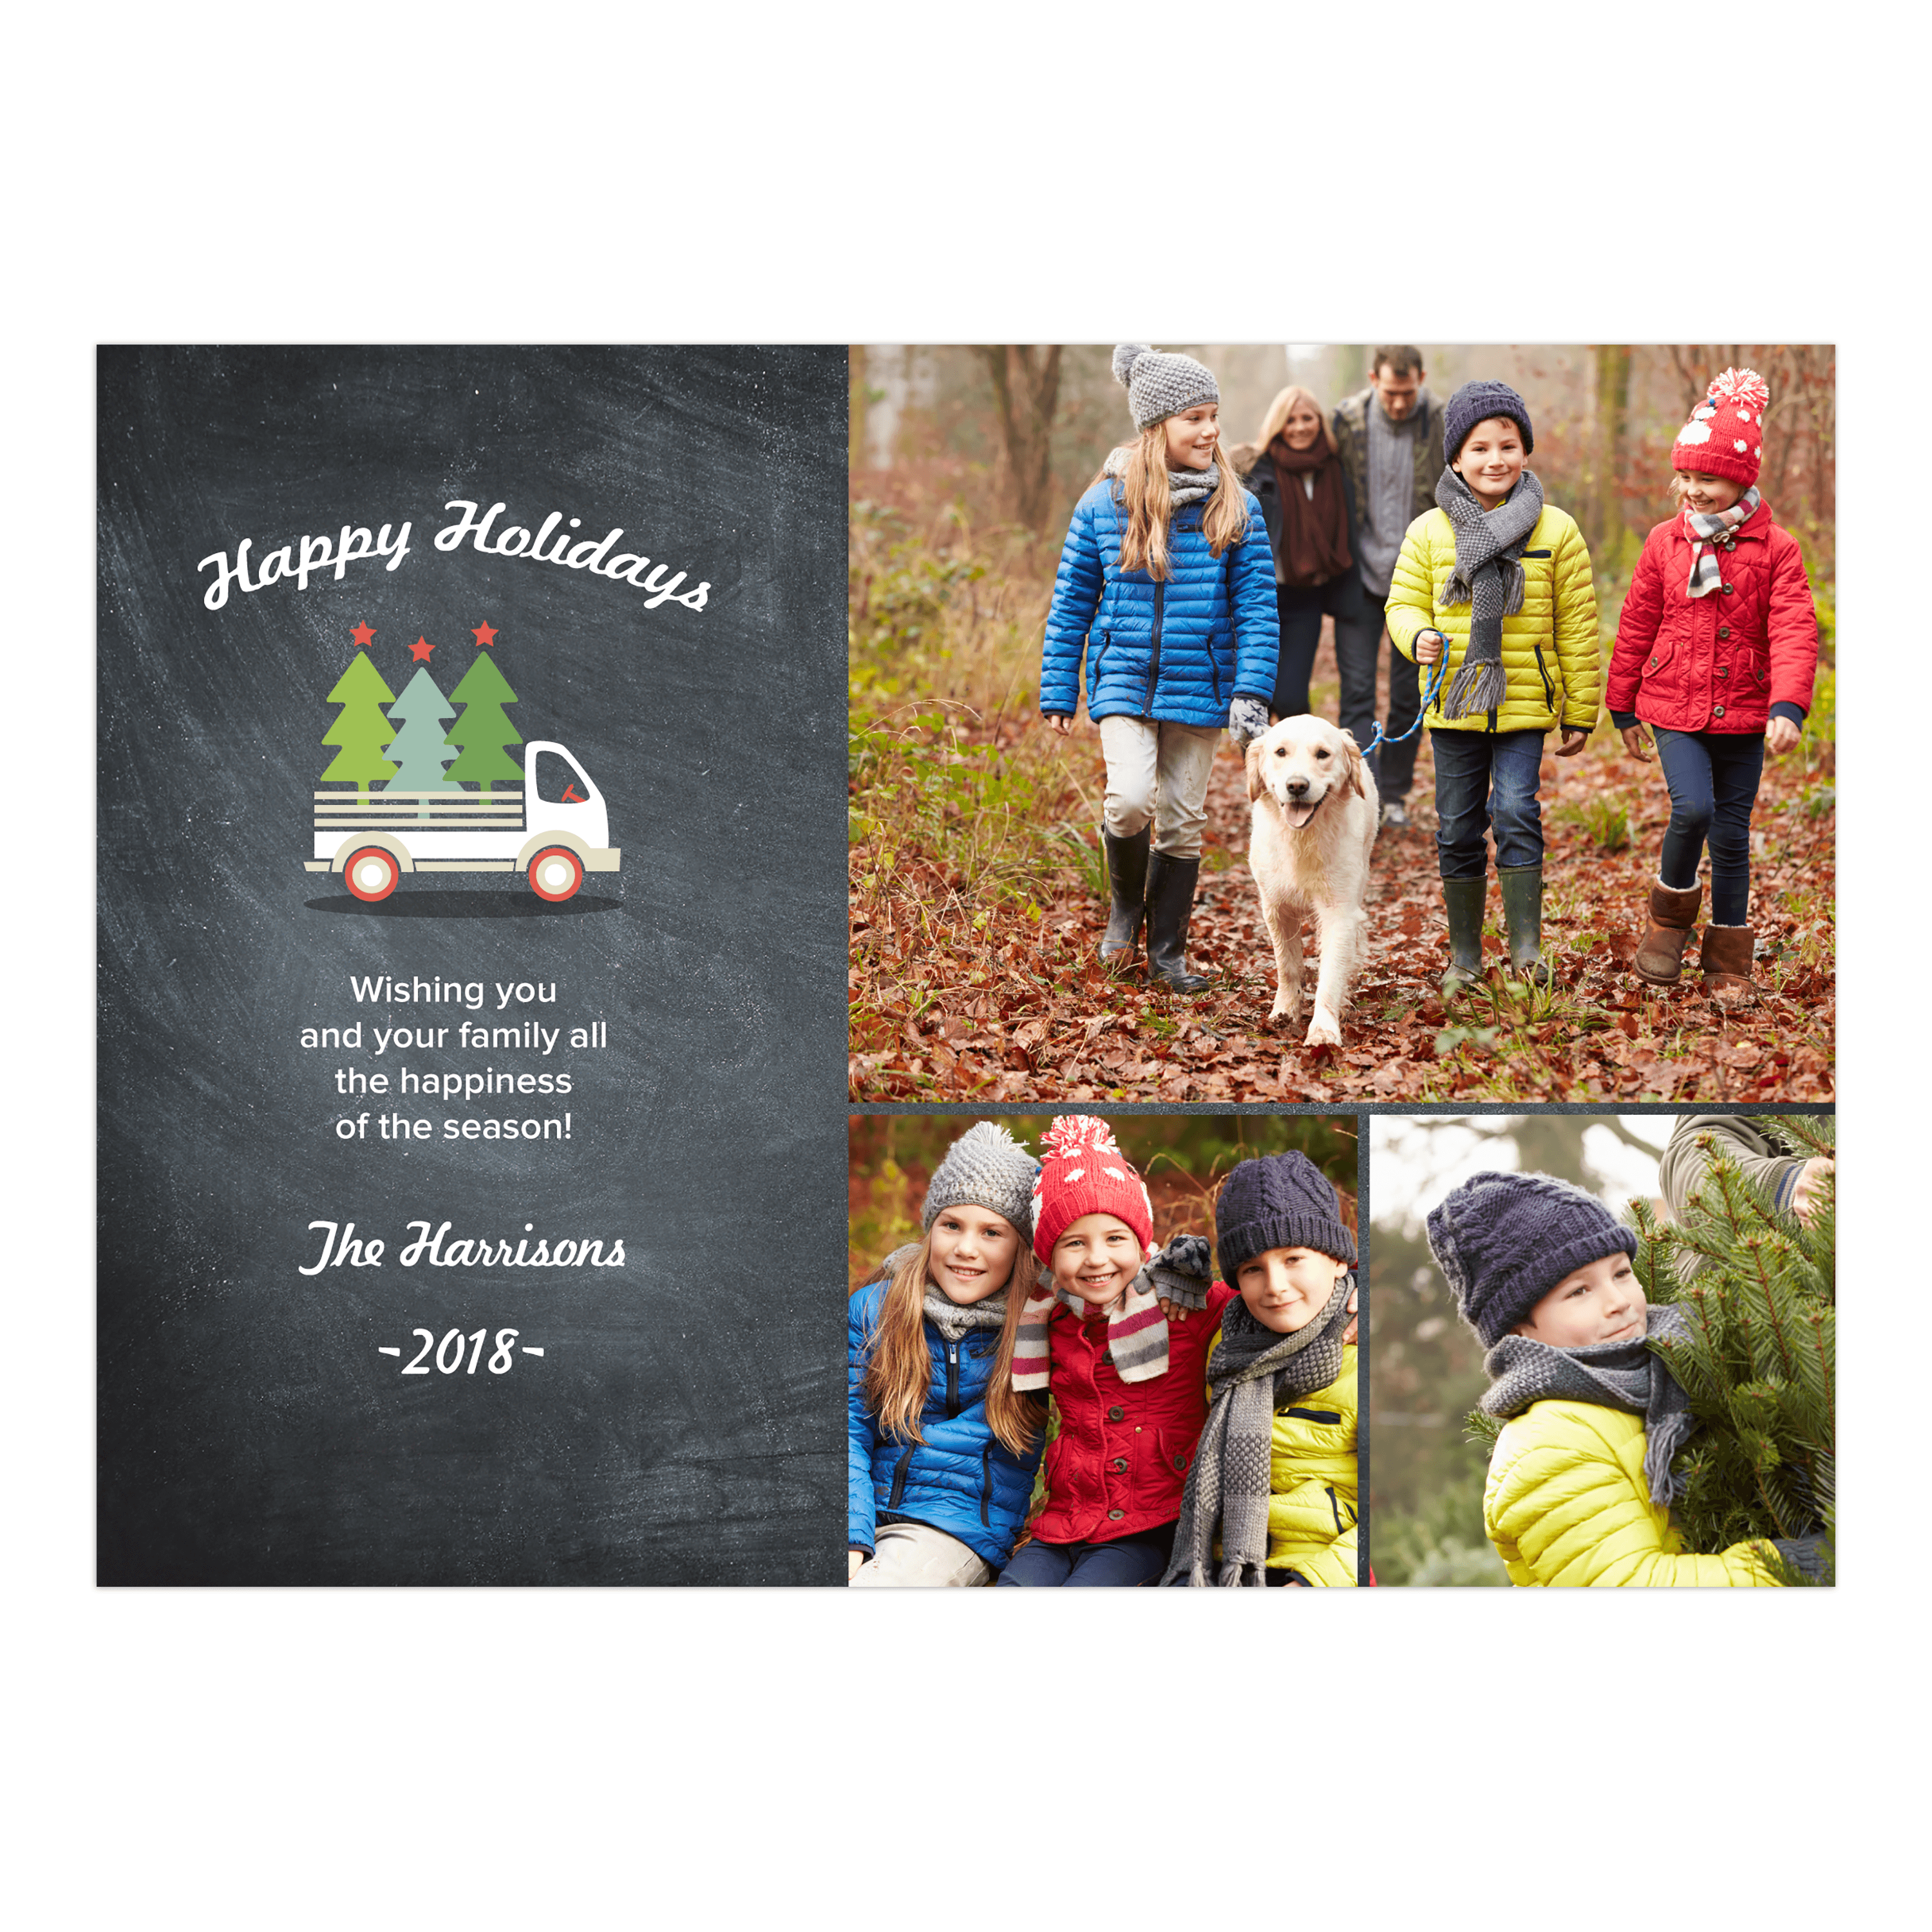 Truckful of Trees - 5x7 Personalized Holiday Card